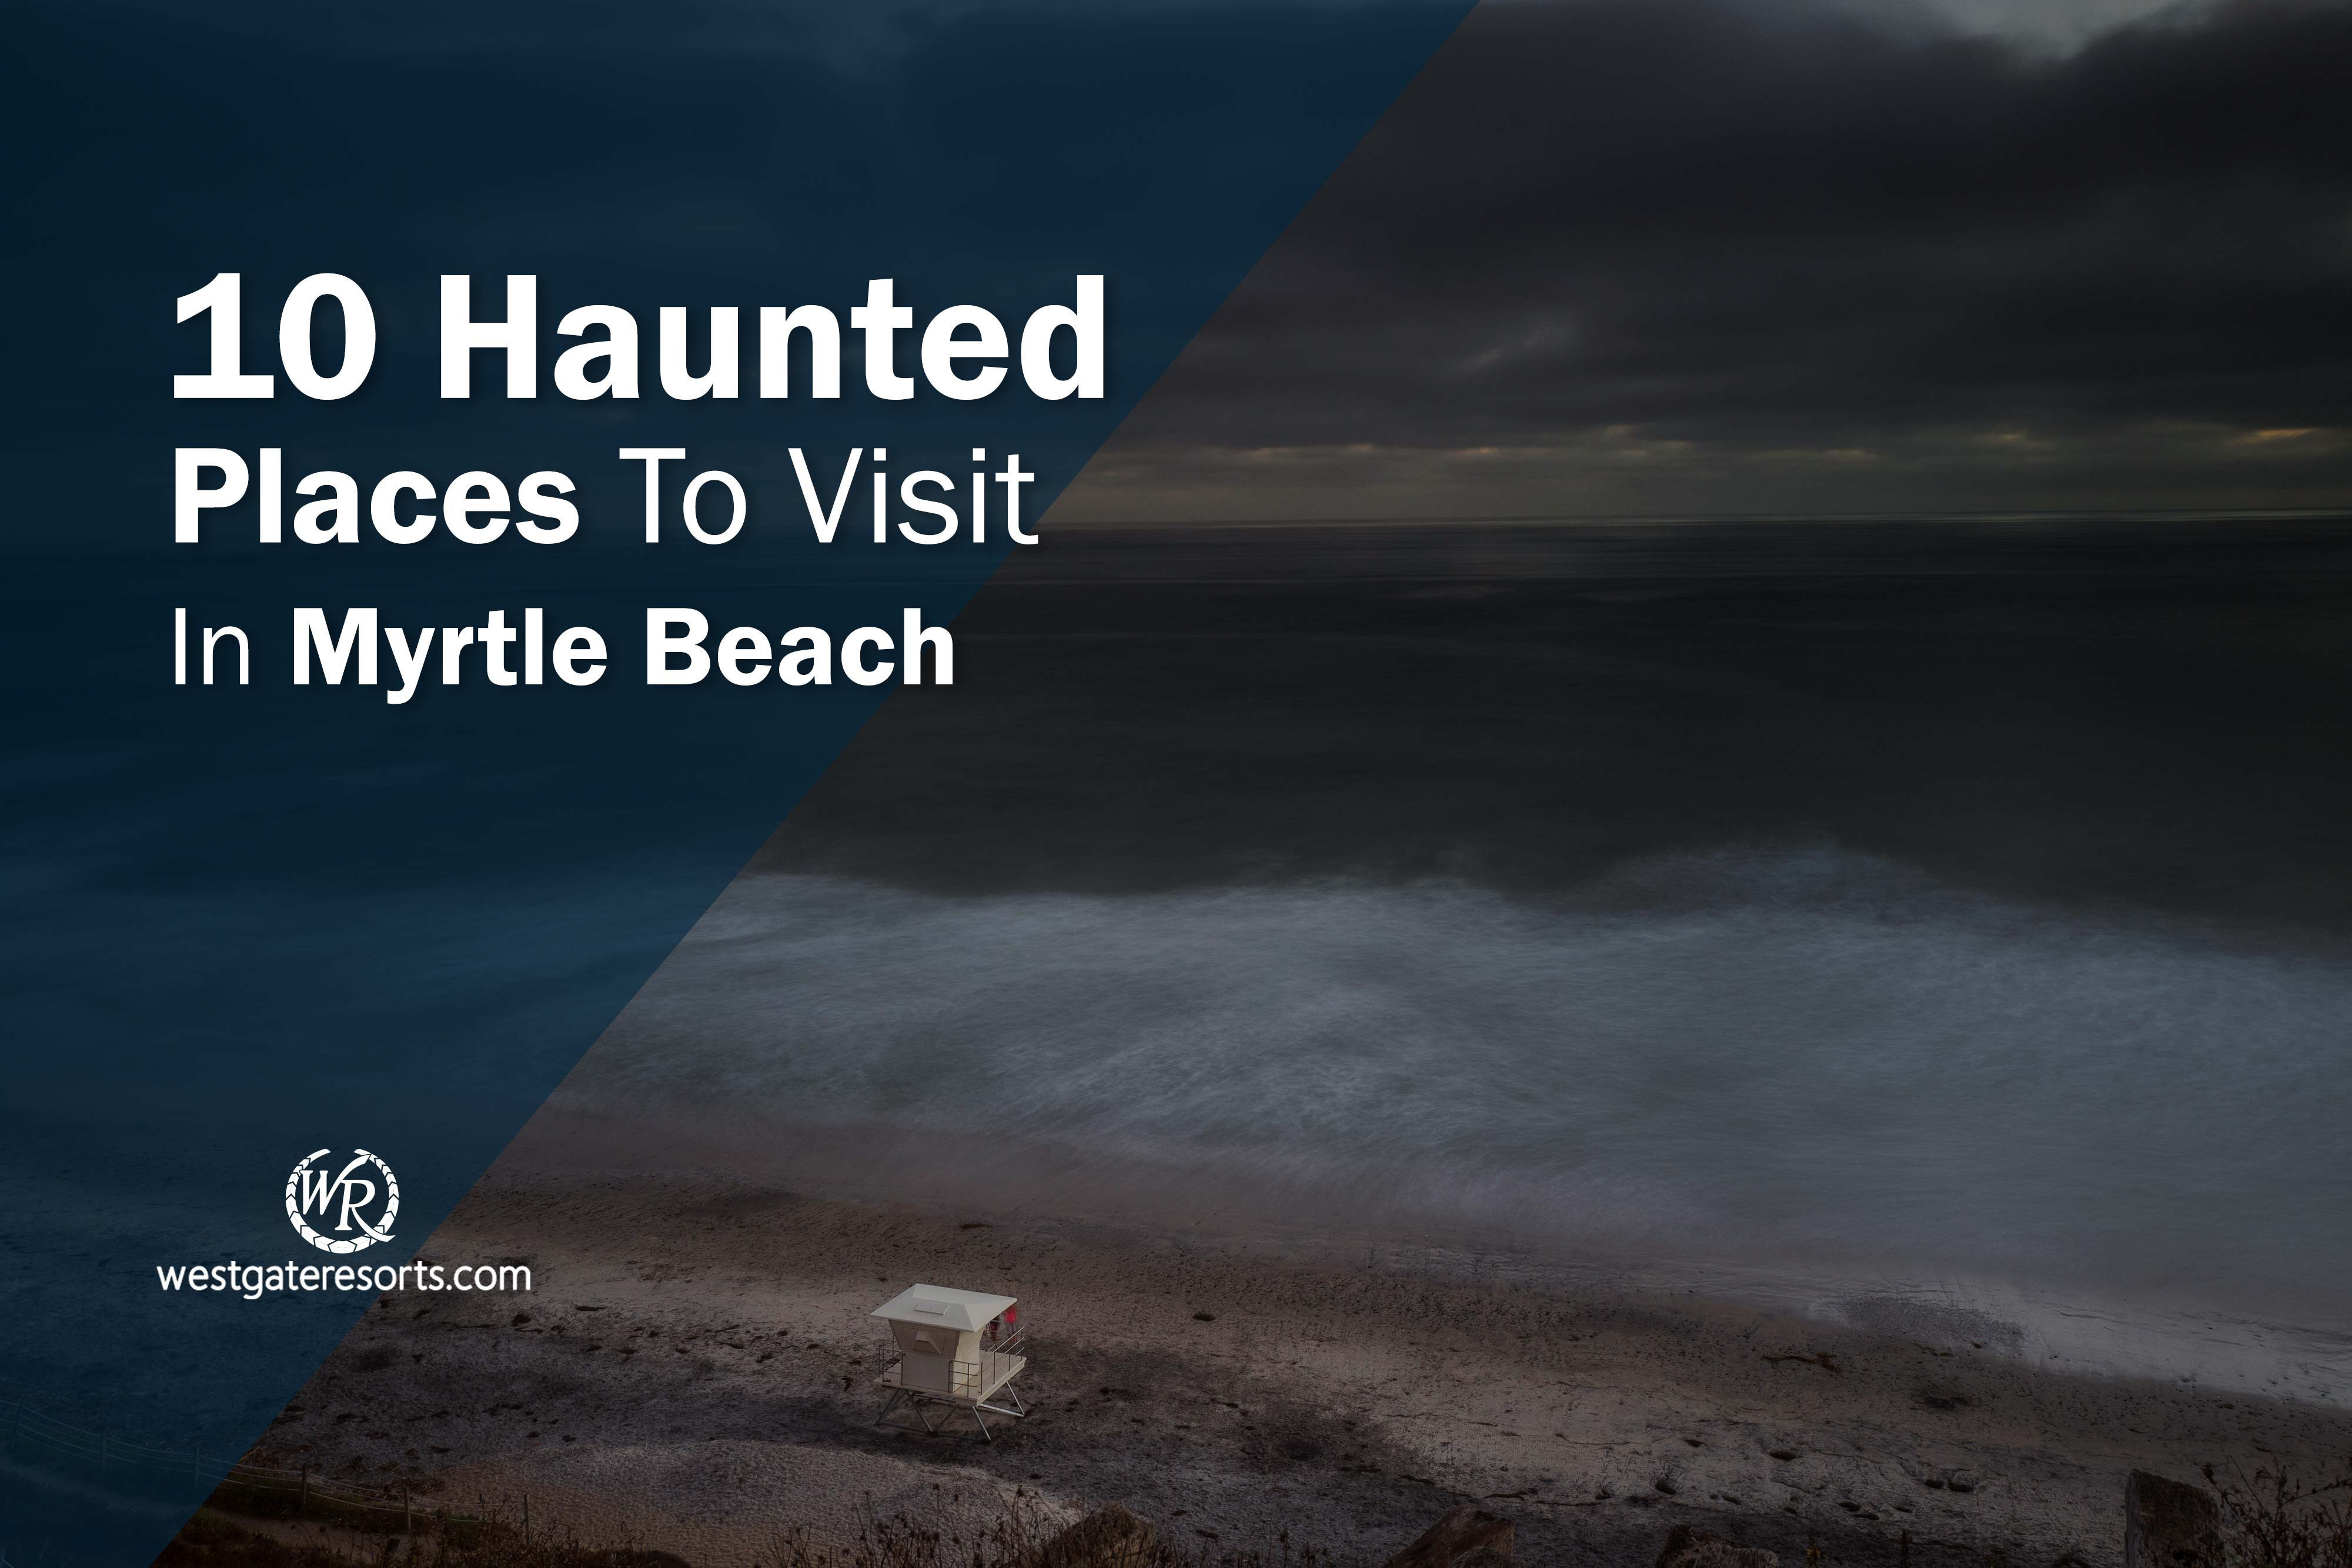 10 Haunted Places To Visit In Myrtle Beach - Haunted Attractions